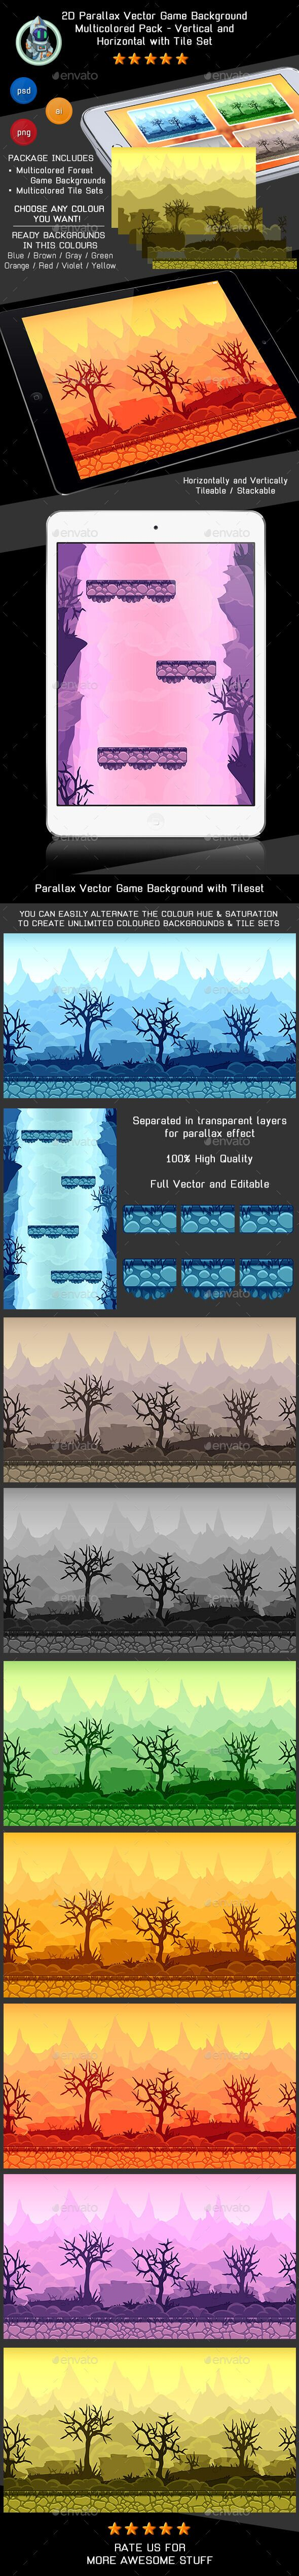 Parallax Vector Game Background with Tileset - Vertical & Horizontal - Backgrounds Game Assets